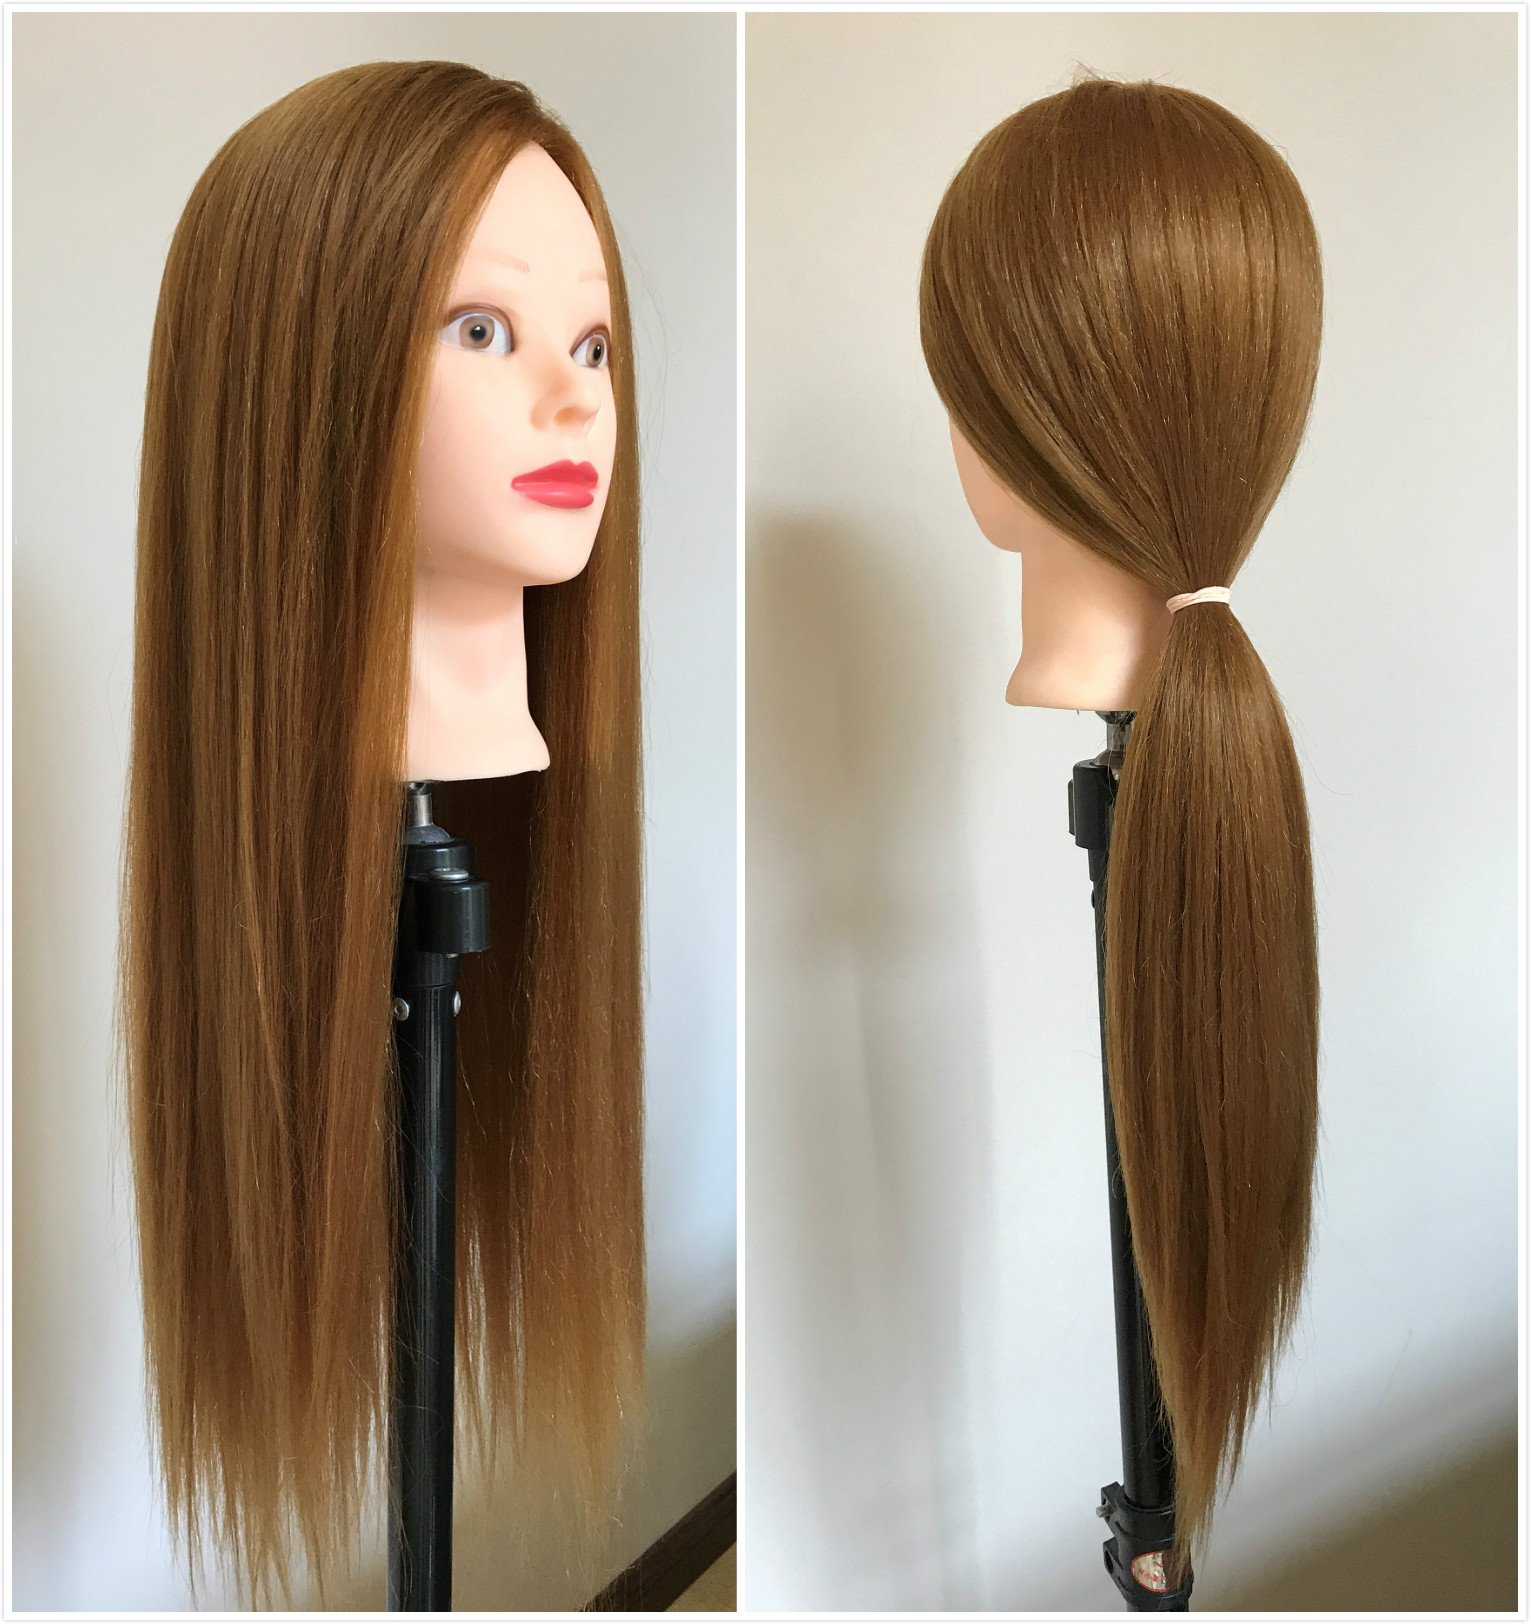 Professional 24 Inches Long 50% Real Human Hair Hairdressing Equipment Styling Head Doll Mannequin Training Head Tools Braiding Cutting Student Practice Model with Clamp(Col. Dark Blonde)